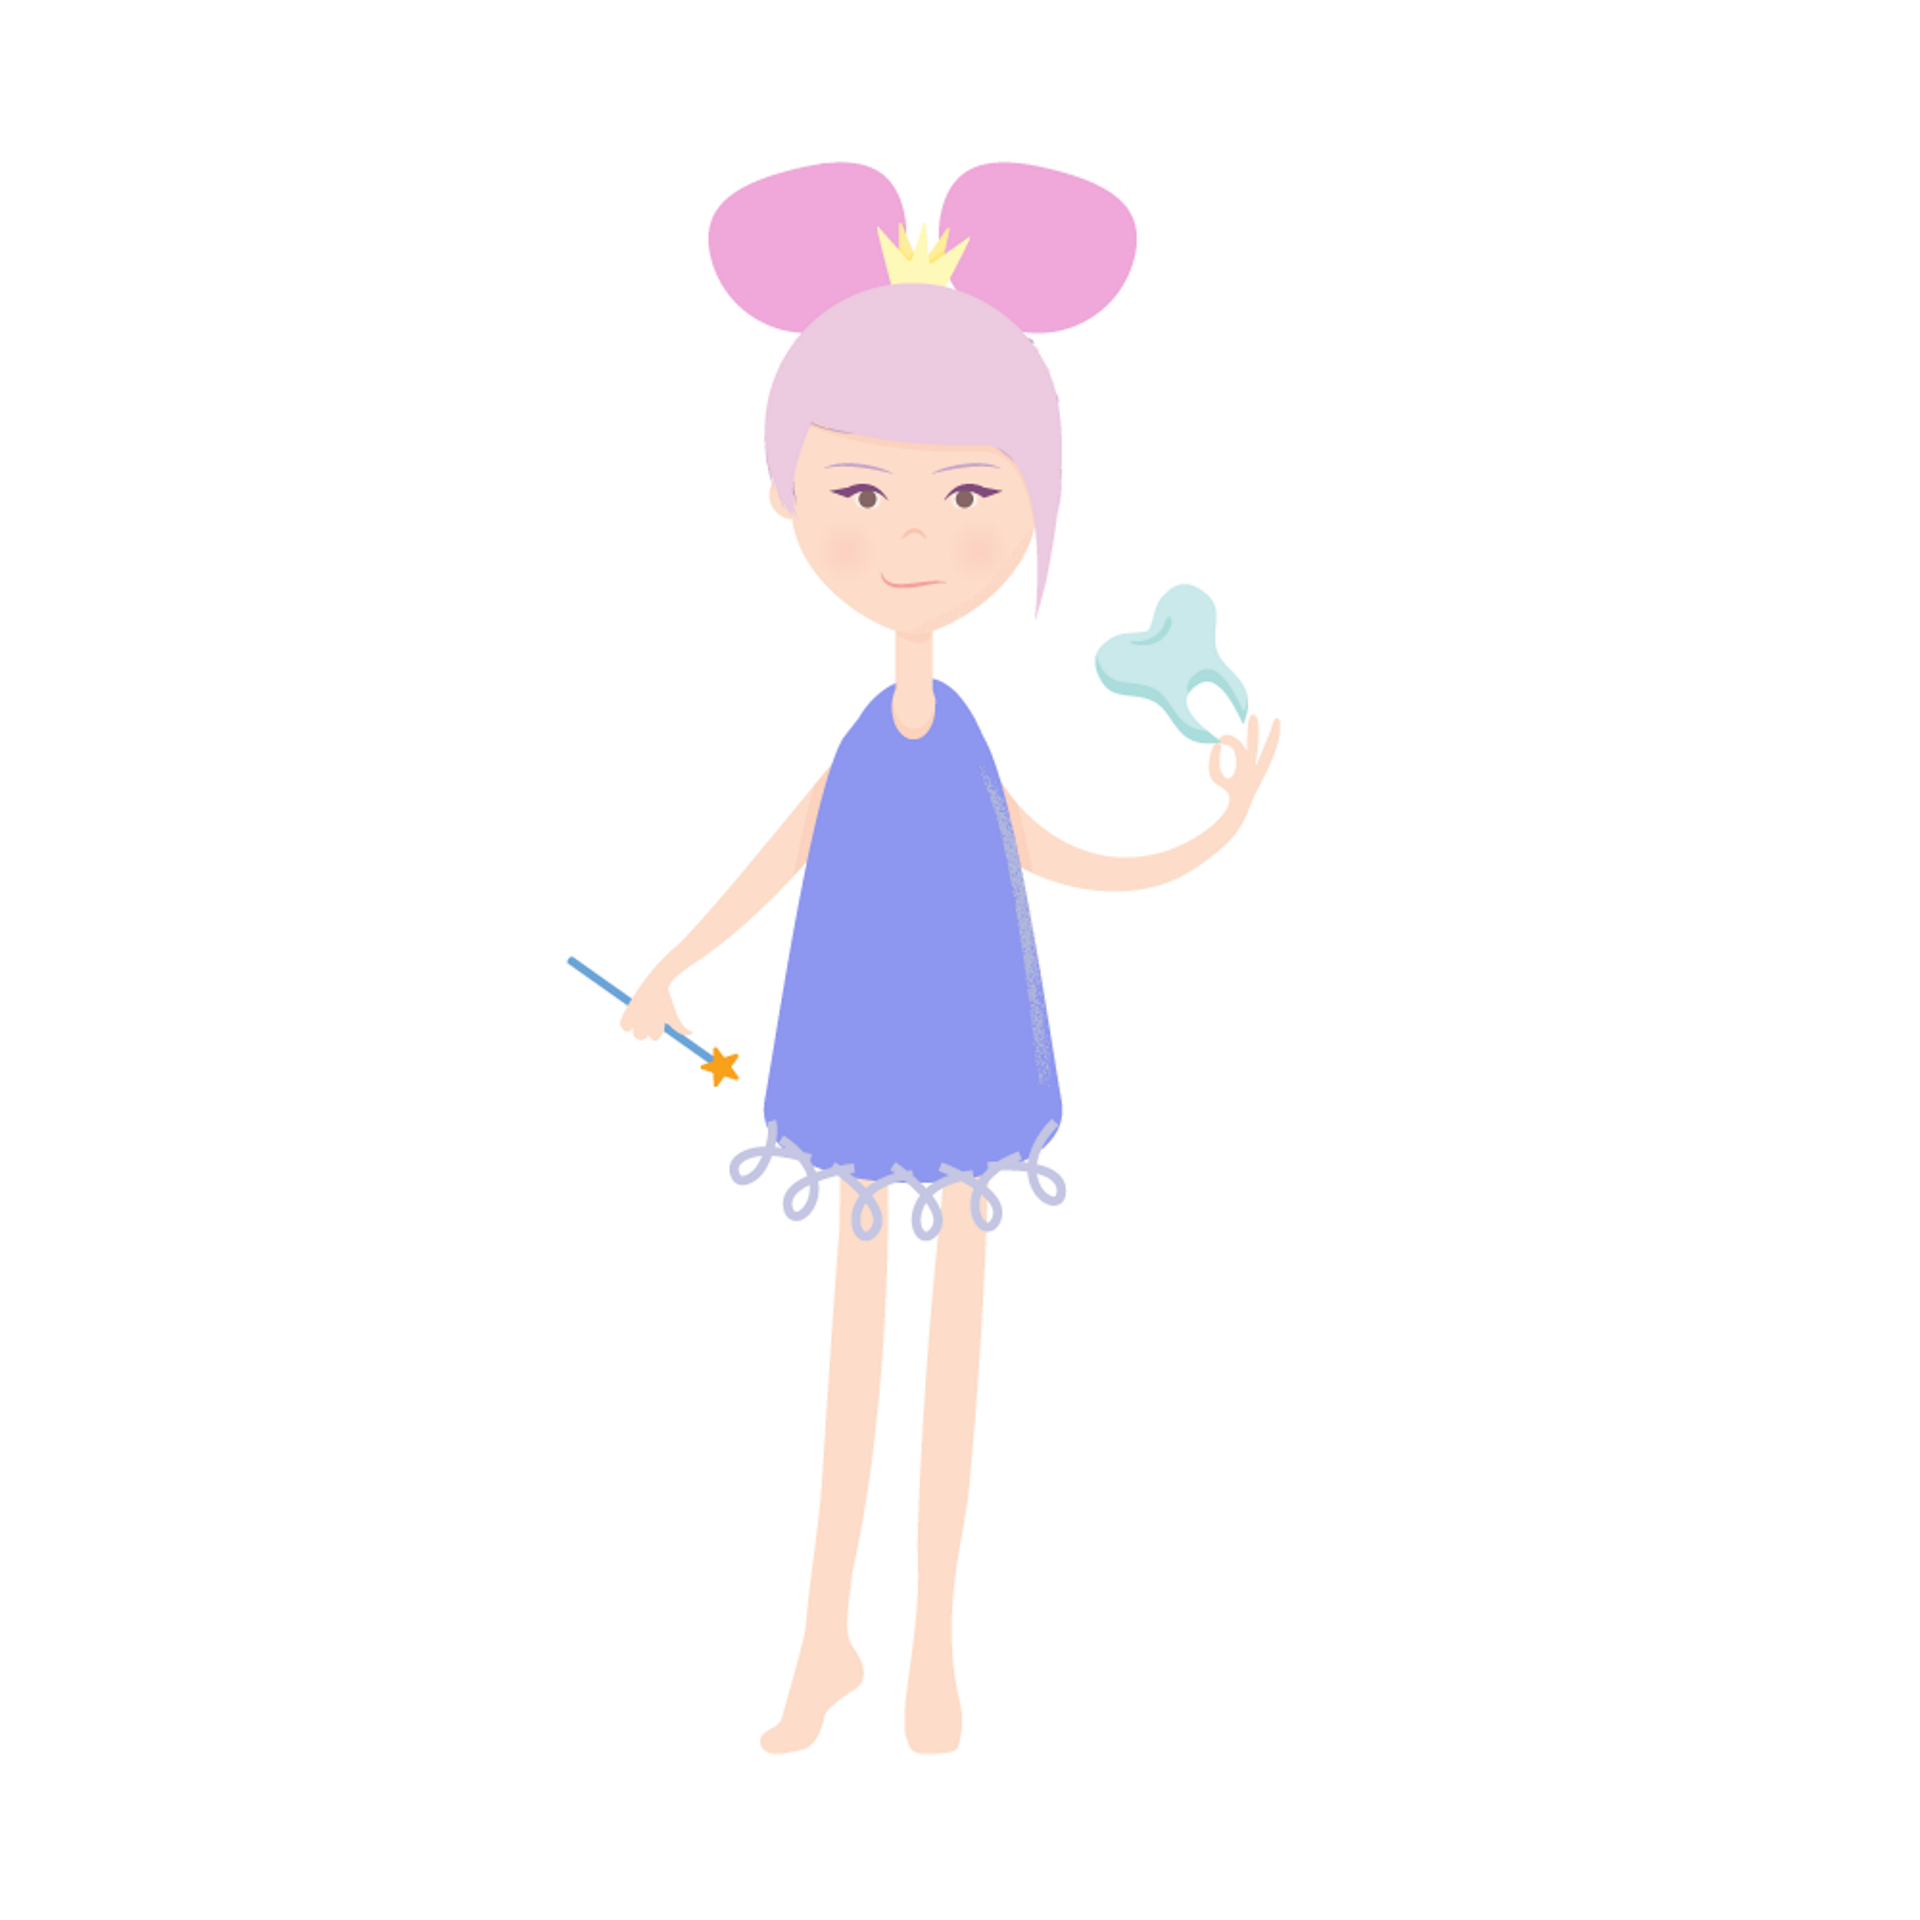 tooth-fairy-2356398